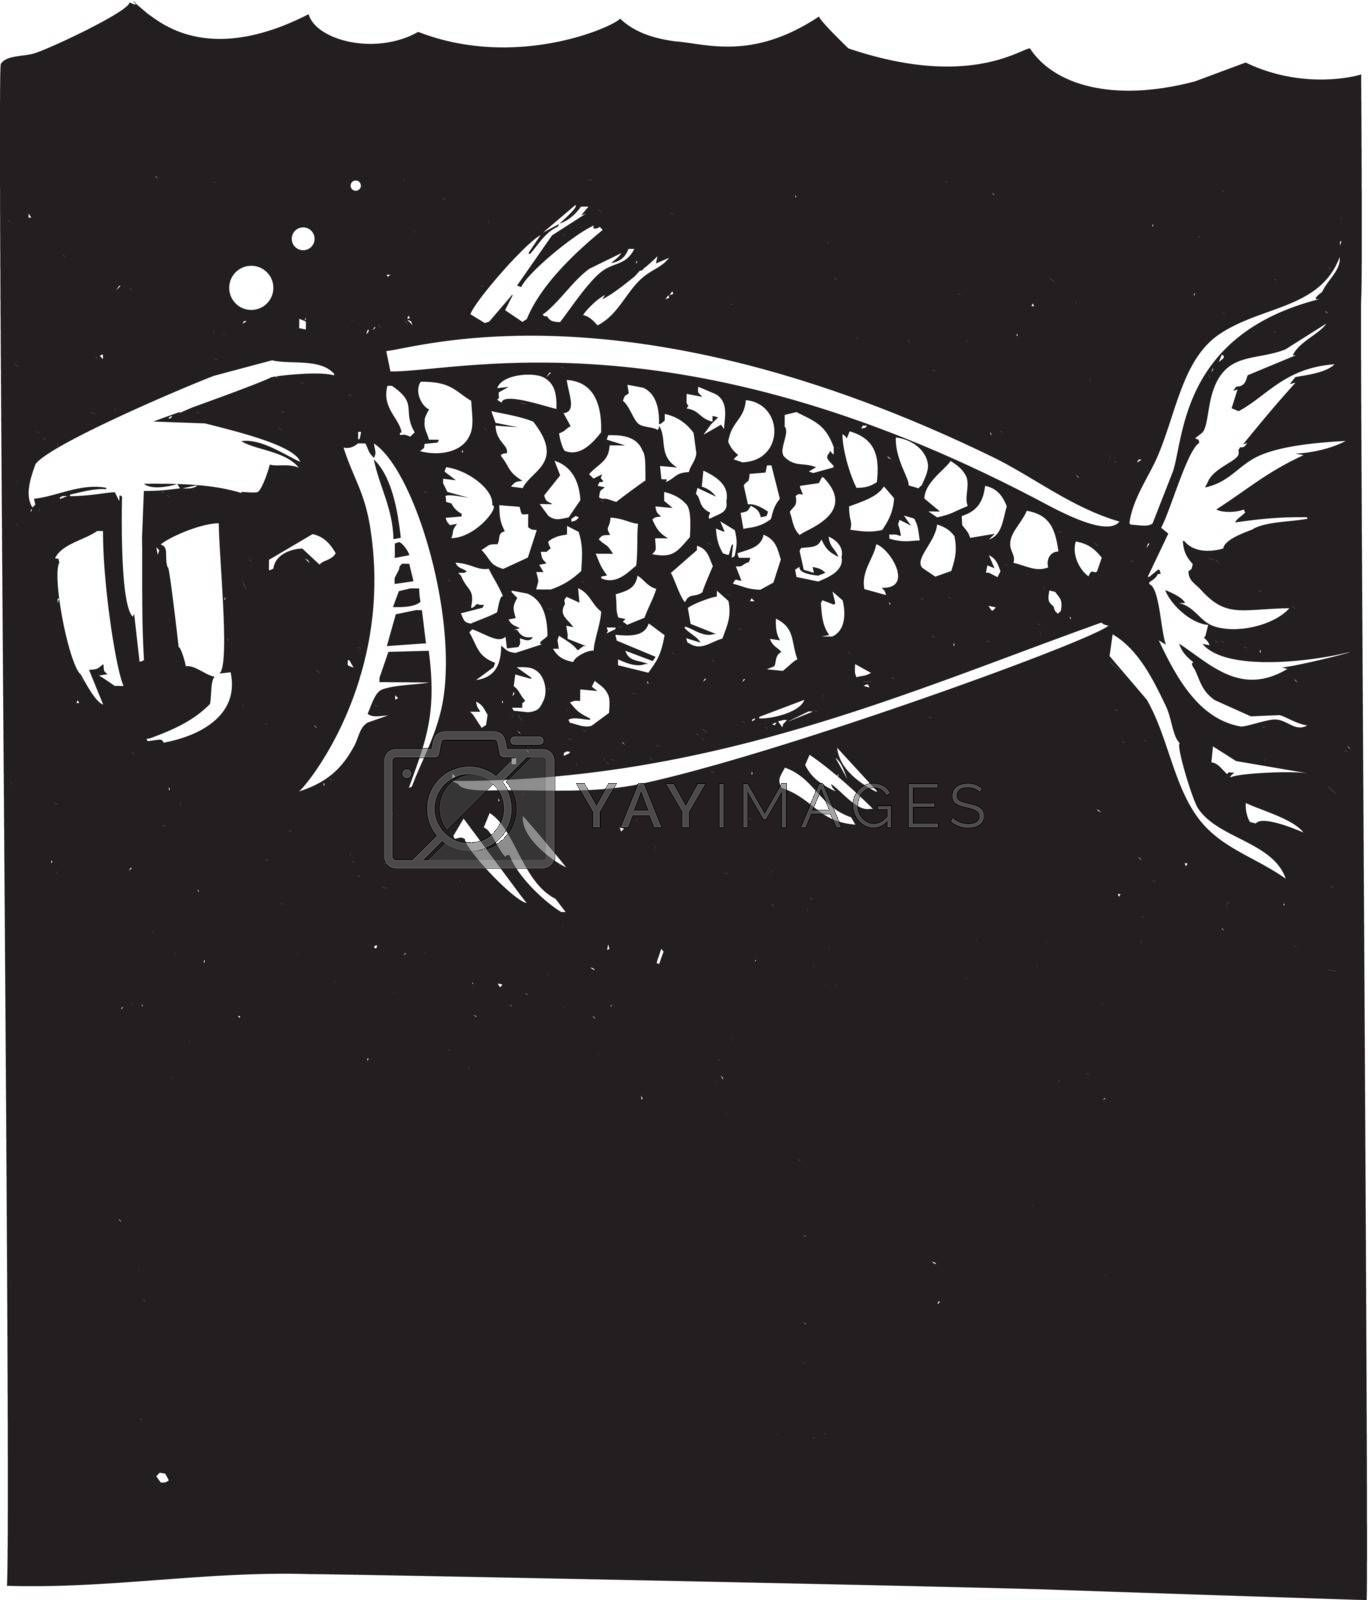 Woodcut style image of a fish with a human face